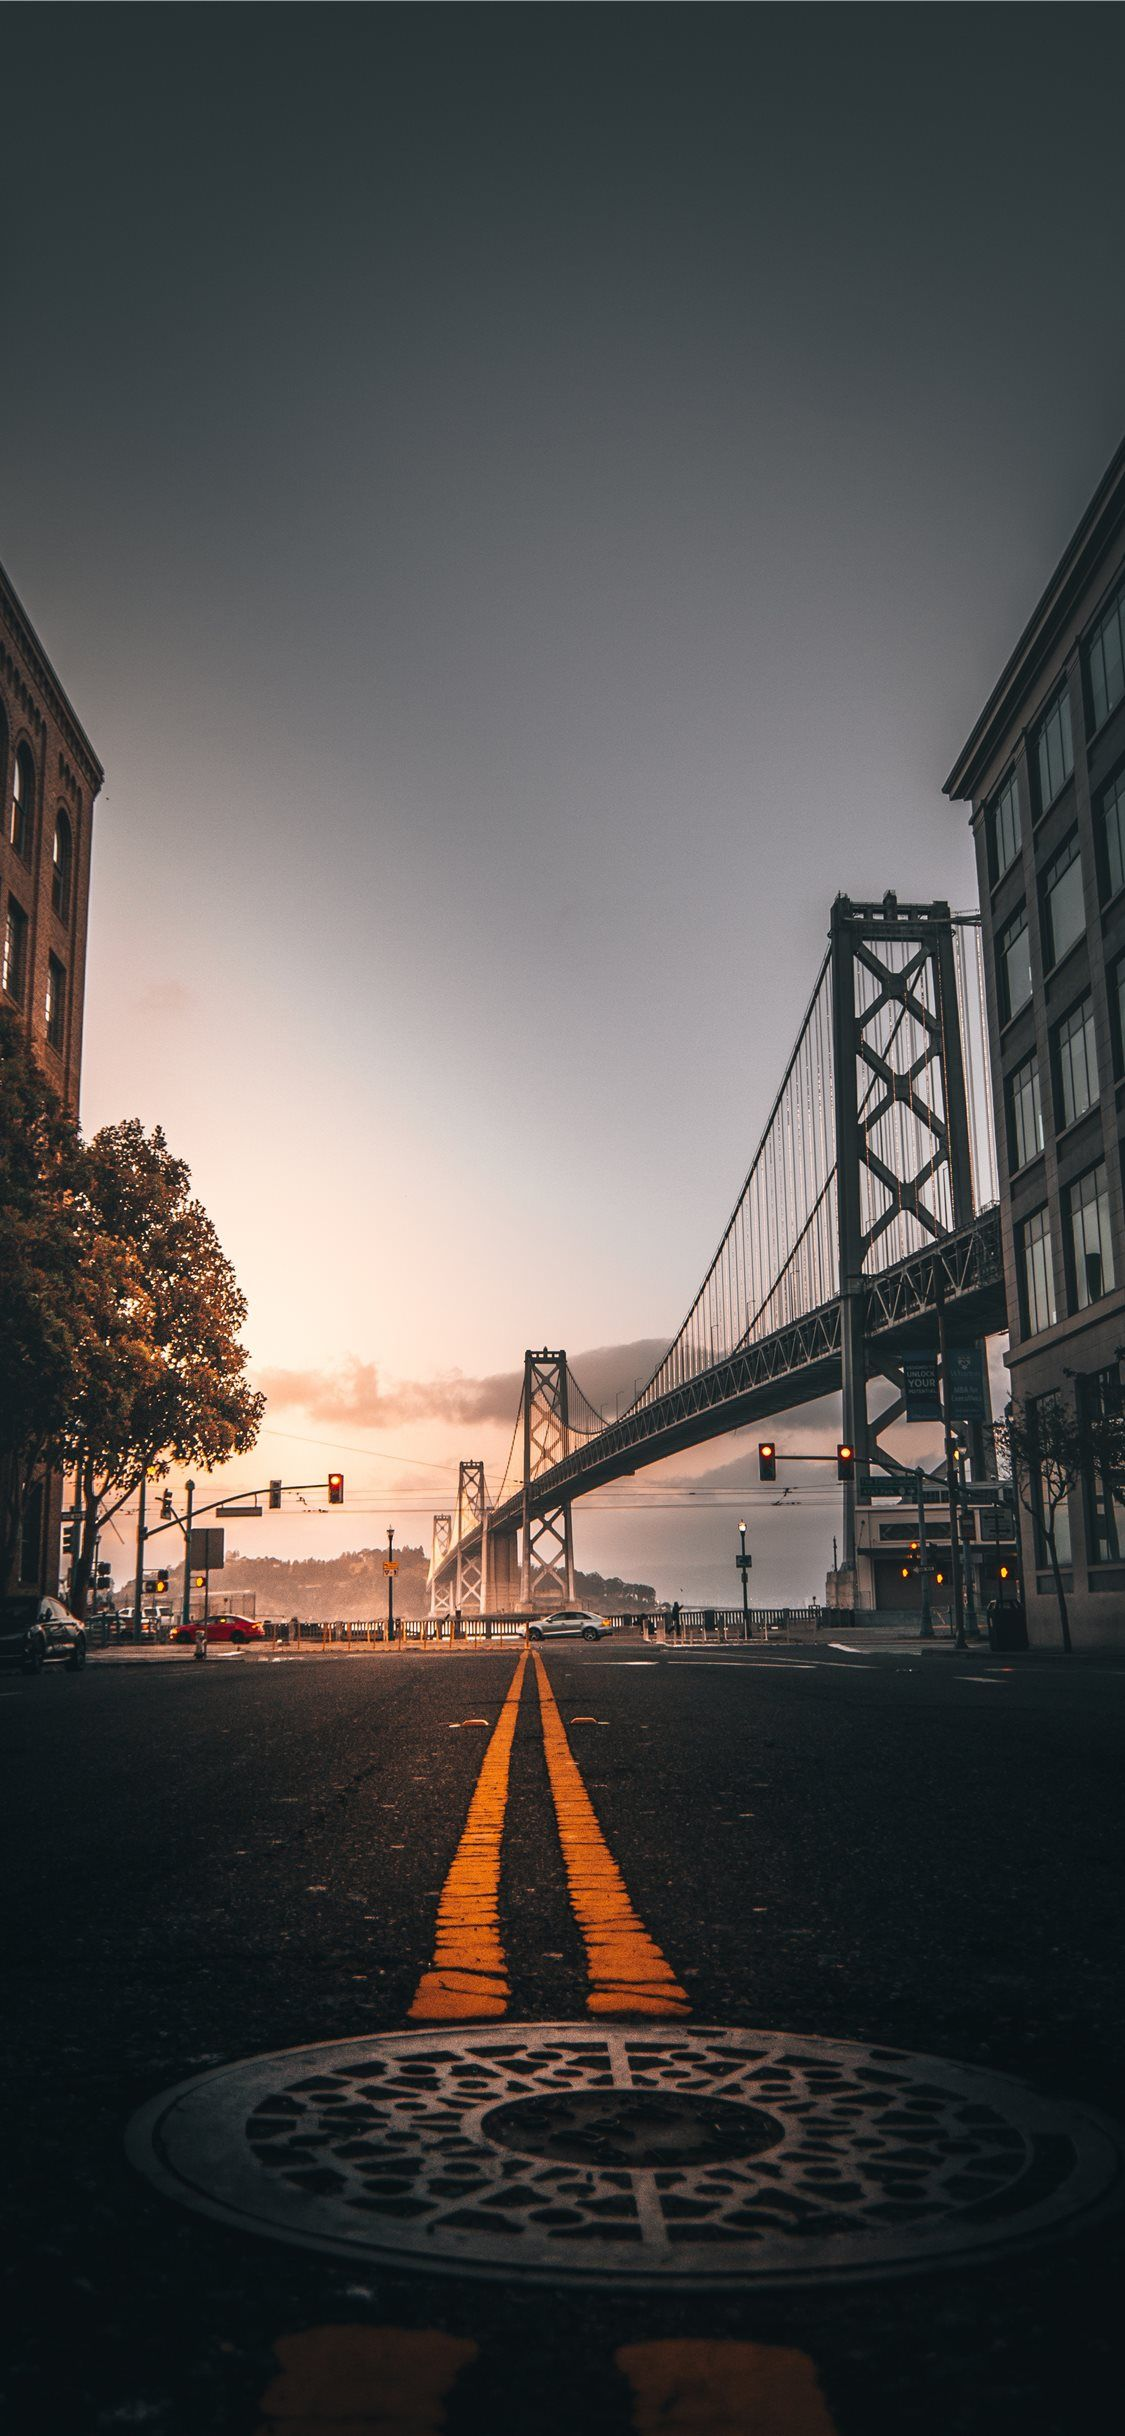 Free Download The Flow Wallpaper Beaty Your Iphone San Francisco United States Francisco San Ho City Wallpaper Landscape Wallpaper Aesthetic Wallpapers